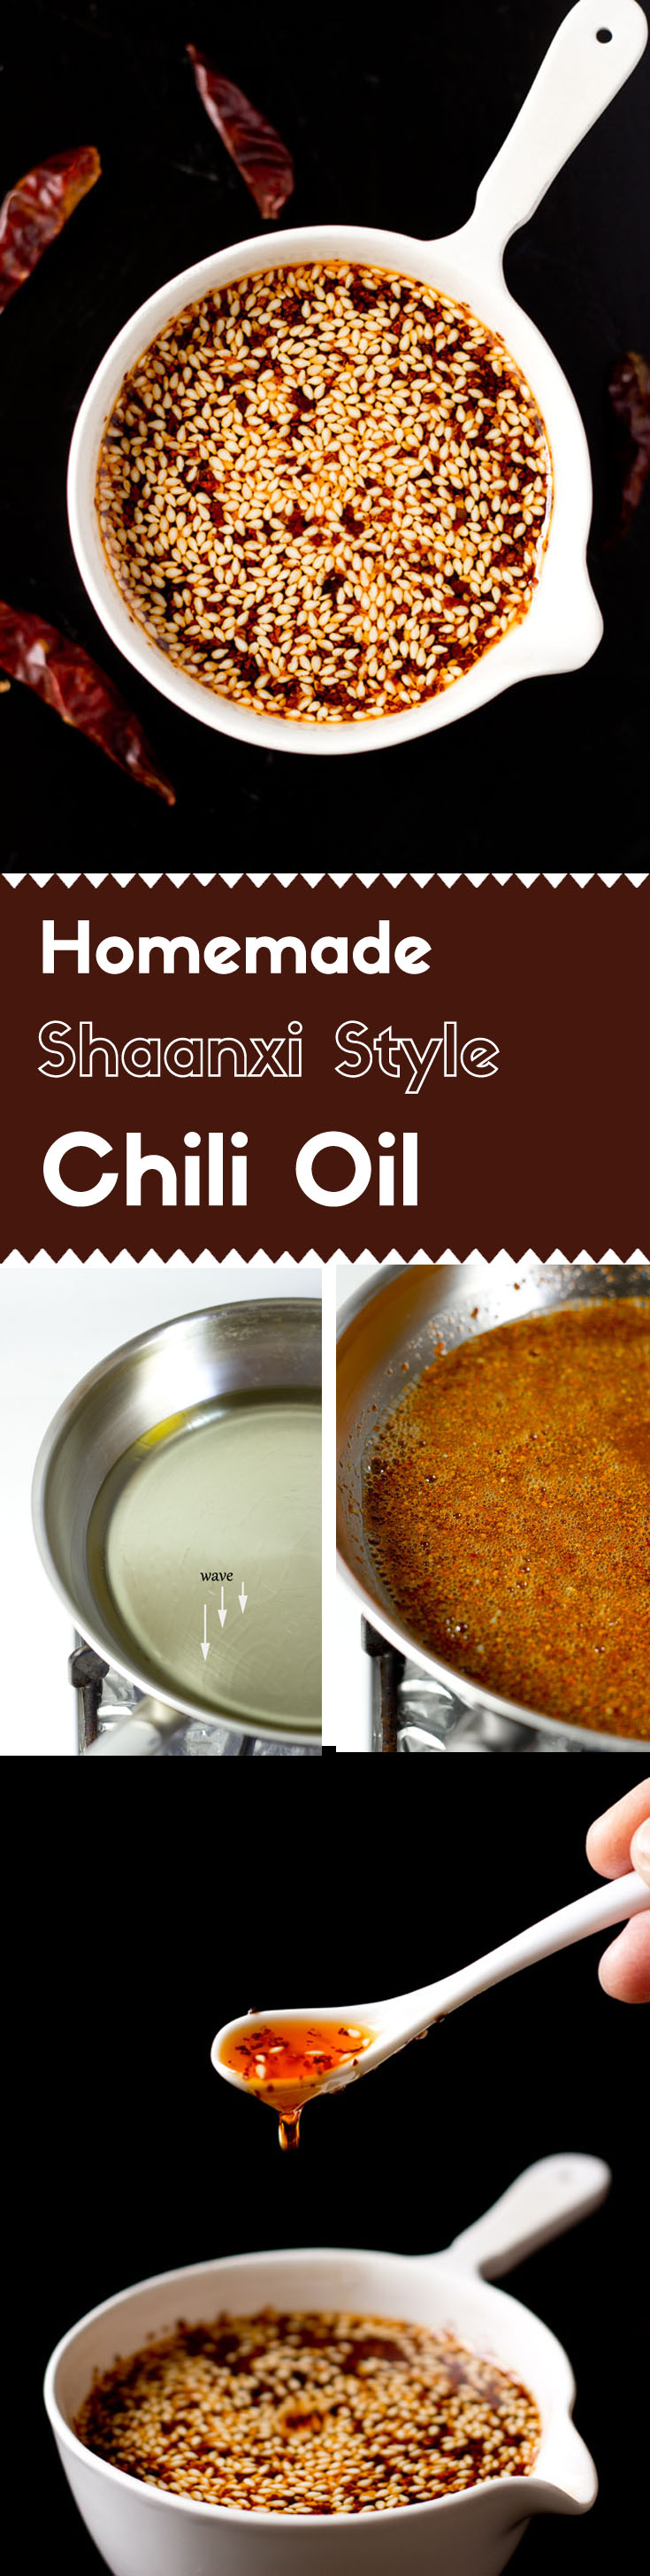 This Shaanxi style chili oil has a strong aromatic hot spicy flavor. It's a key element in many authentic Chinese salad, soup, and noodle dishes.